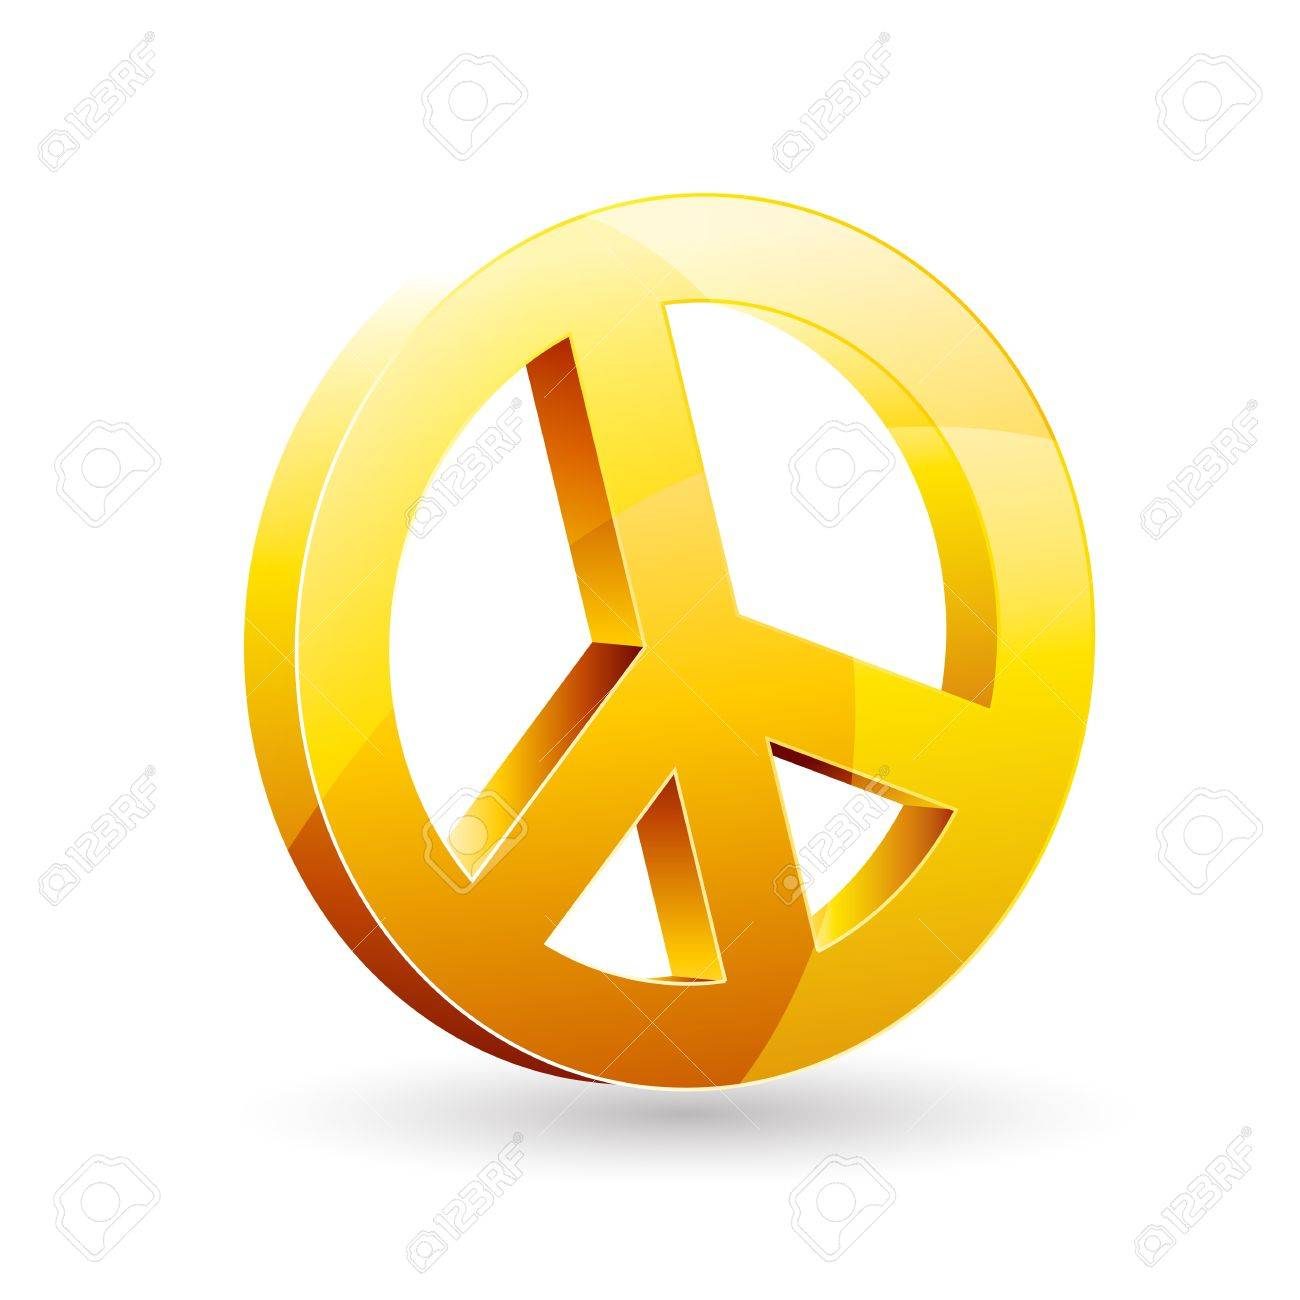 Illustration Of Peace Sign On White Background Royalty Free Cliparts